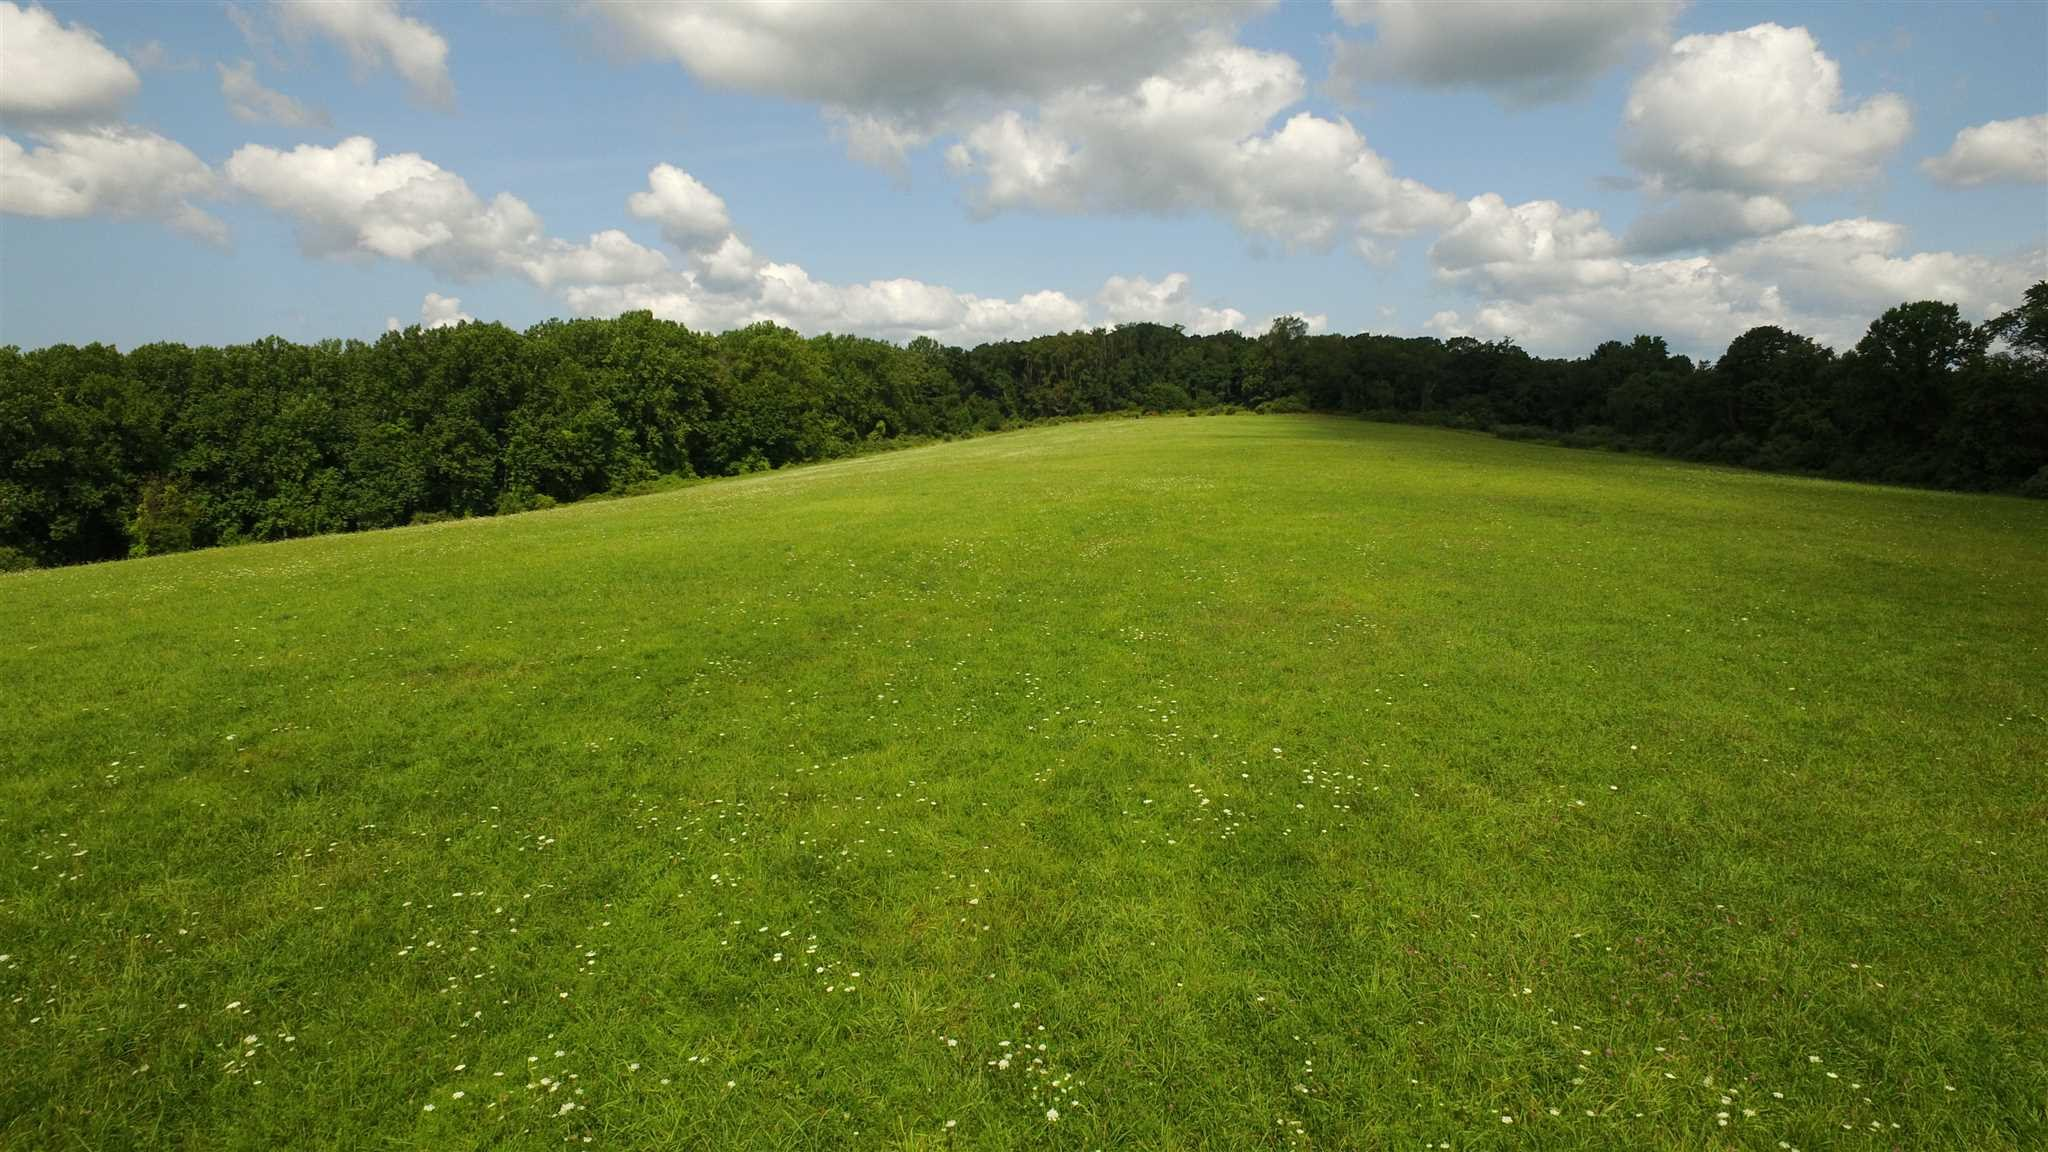 Land for Sale at 37 S QUAKER HILL ROAD 37 S QUAKER HILL ROAD Pawling, New York 12564 United States